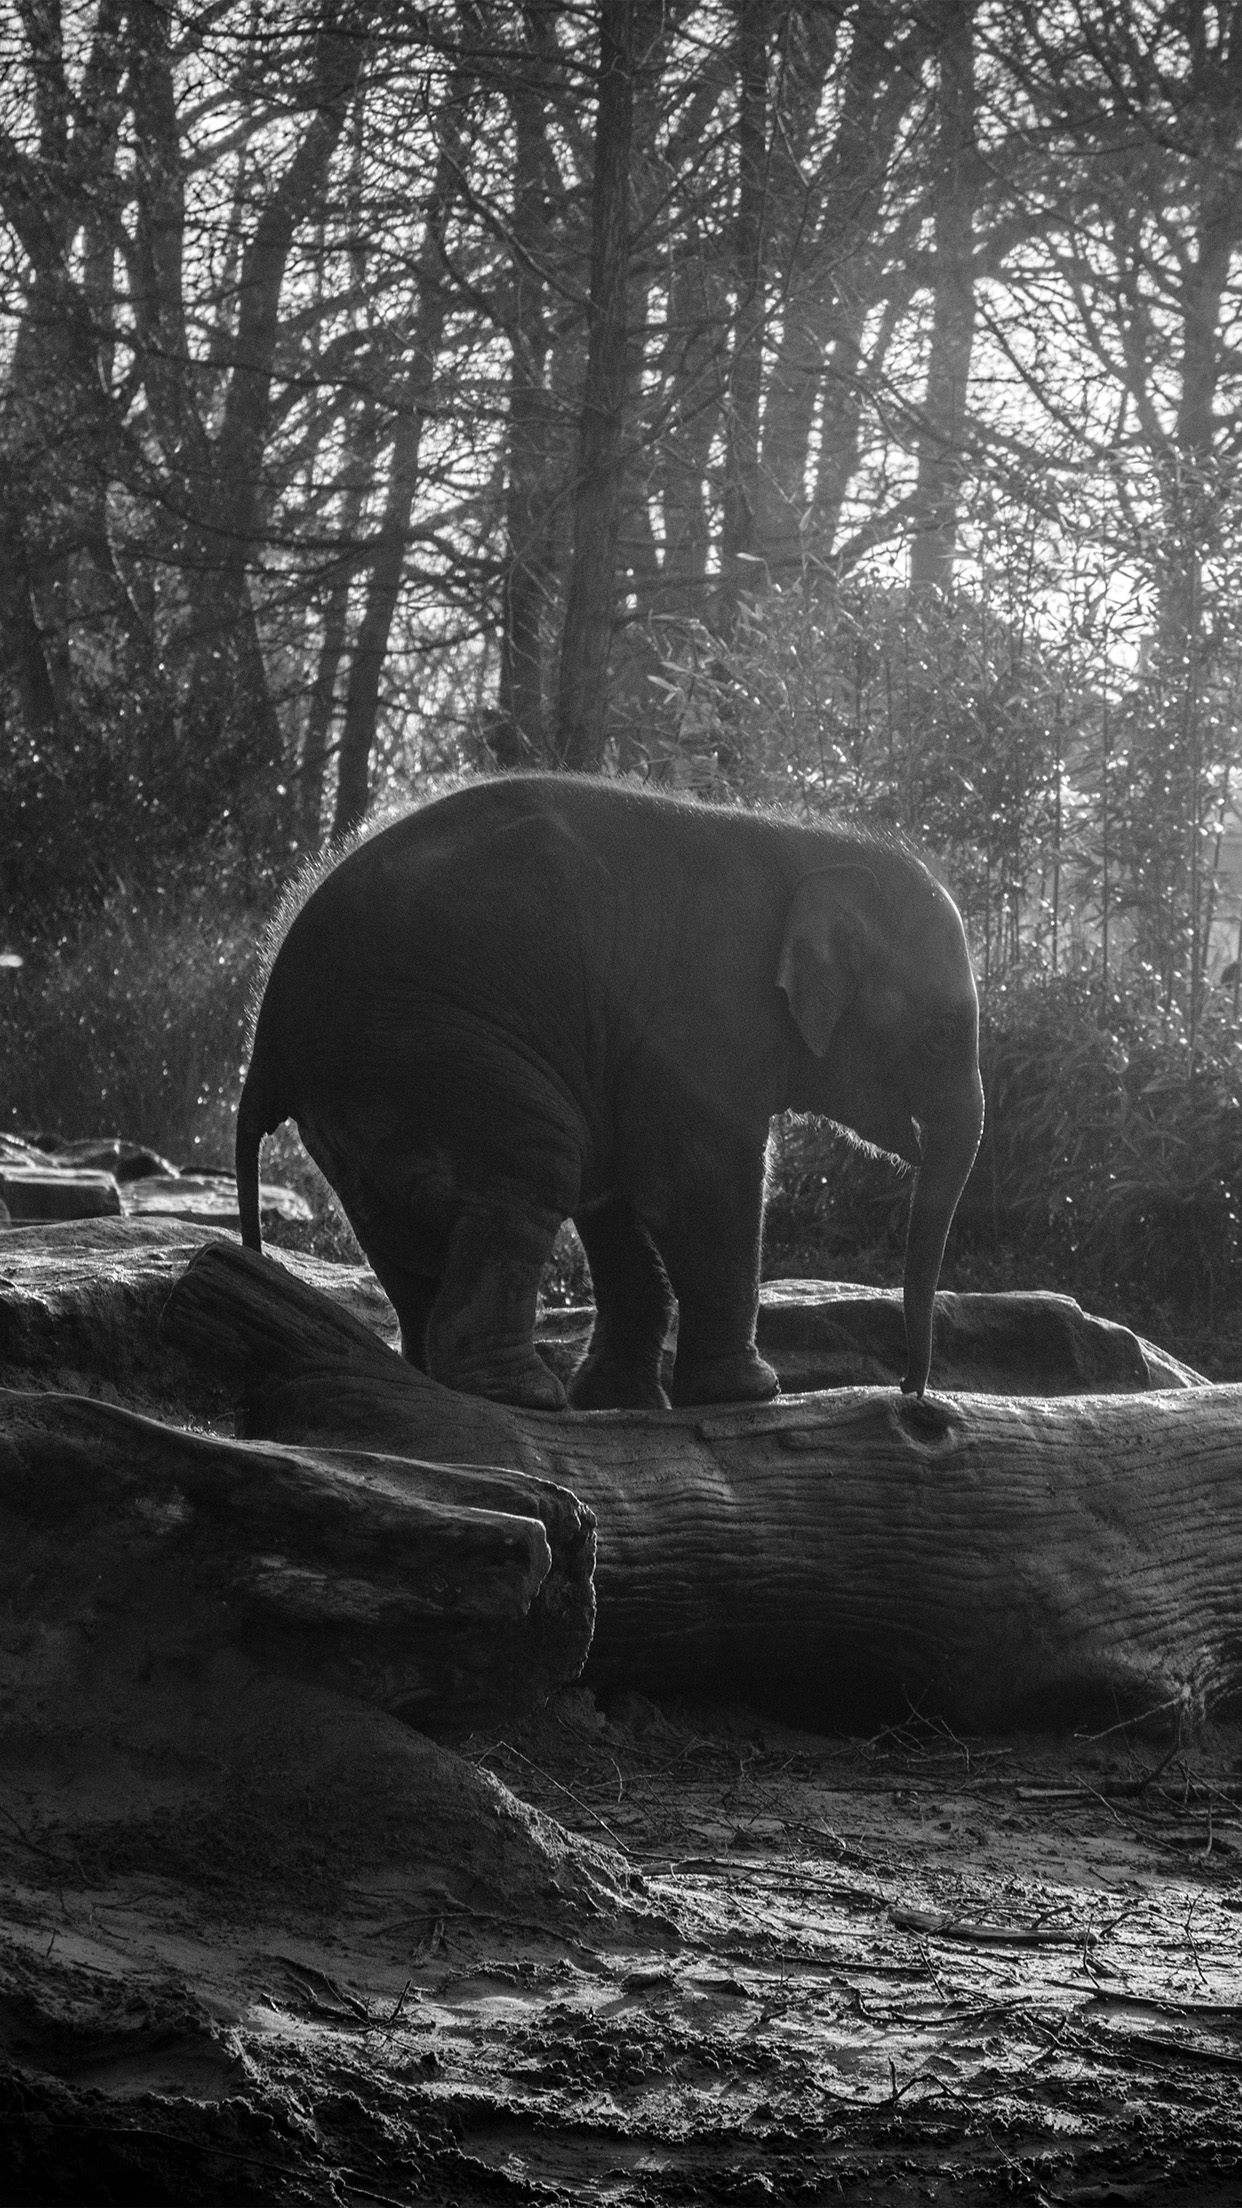 iphone7papers - mw67-elephant-dark-bw-animal-cute-nature-baby